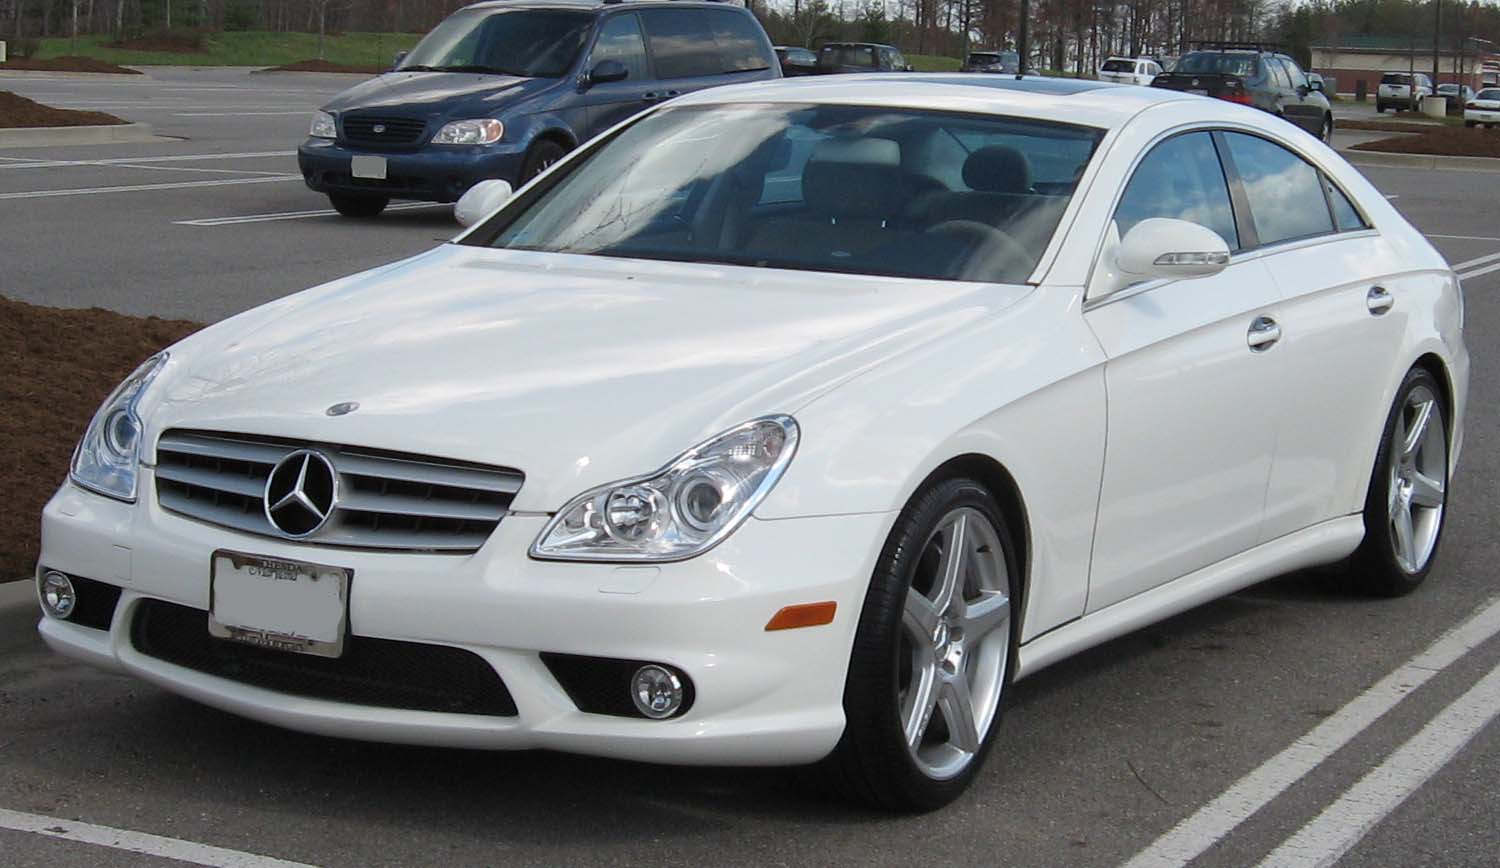 Datei 2006 mercedes benz cls55 amg wikipedia for Mercedes benz of cleveland